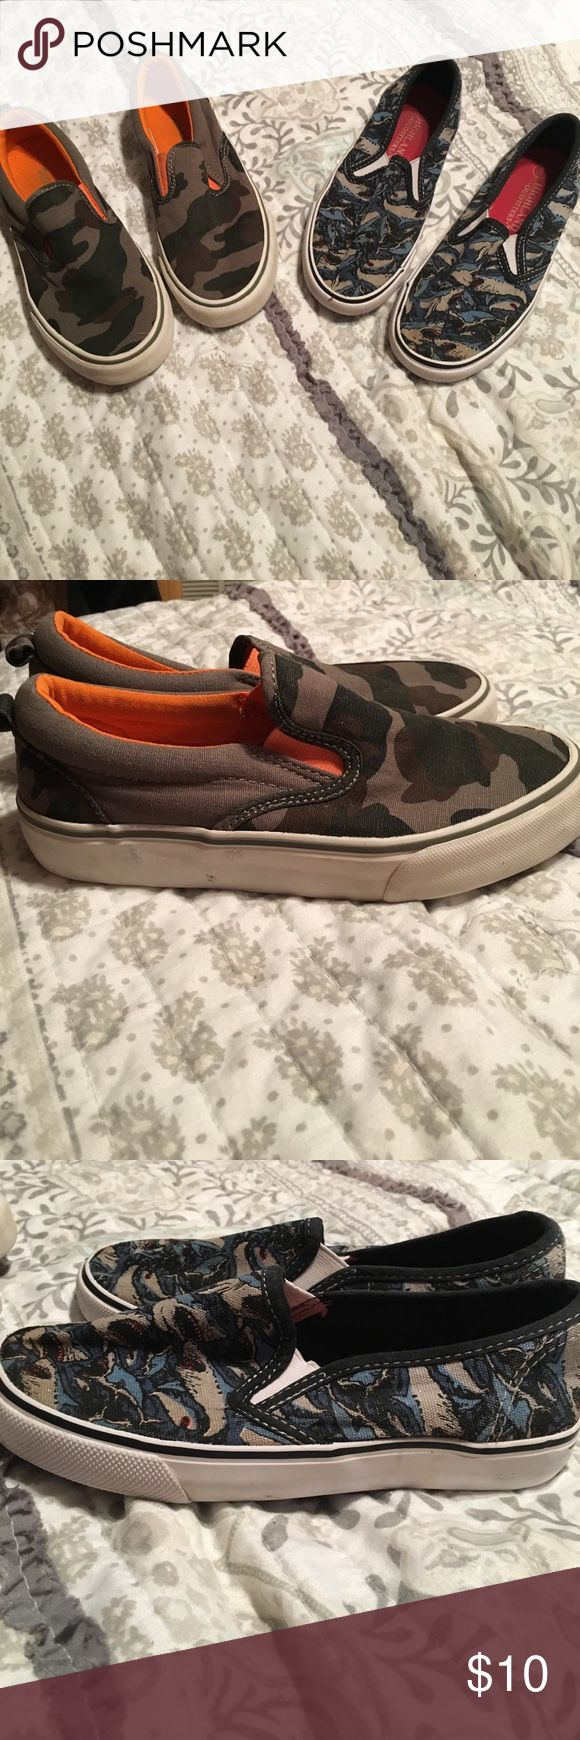 Boys shoes size 1 slip one. 2 pair boys size 1 slip ons. Old Navy camo and highland outifitters sharks. Good condition. Old Navy Shoes Slippers